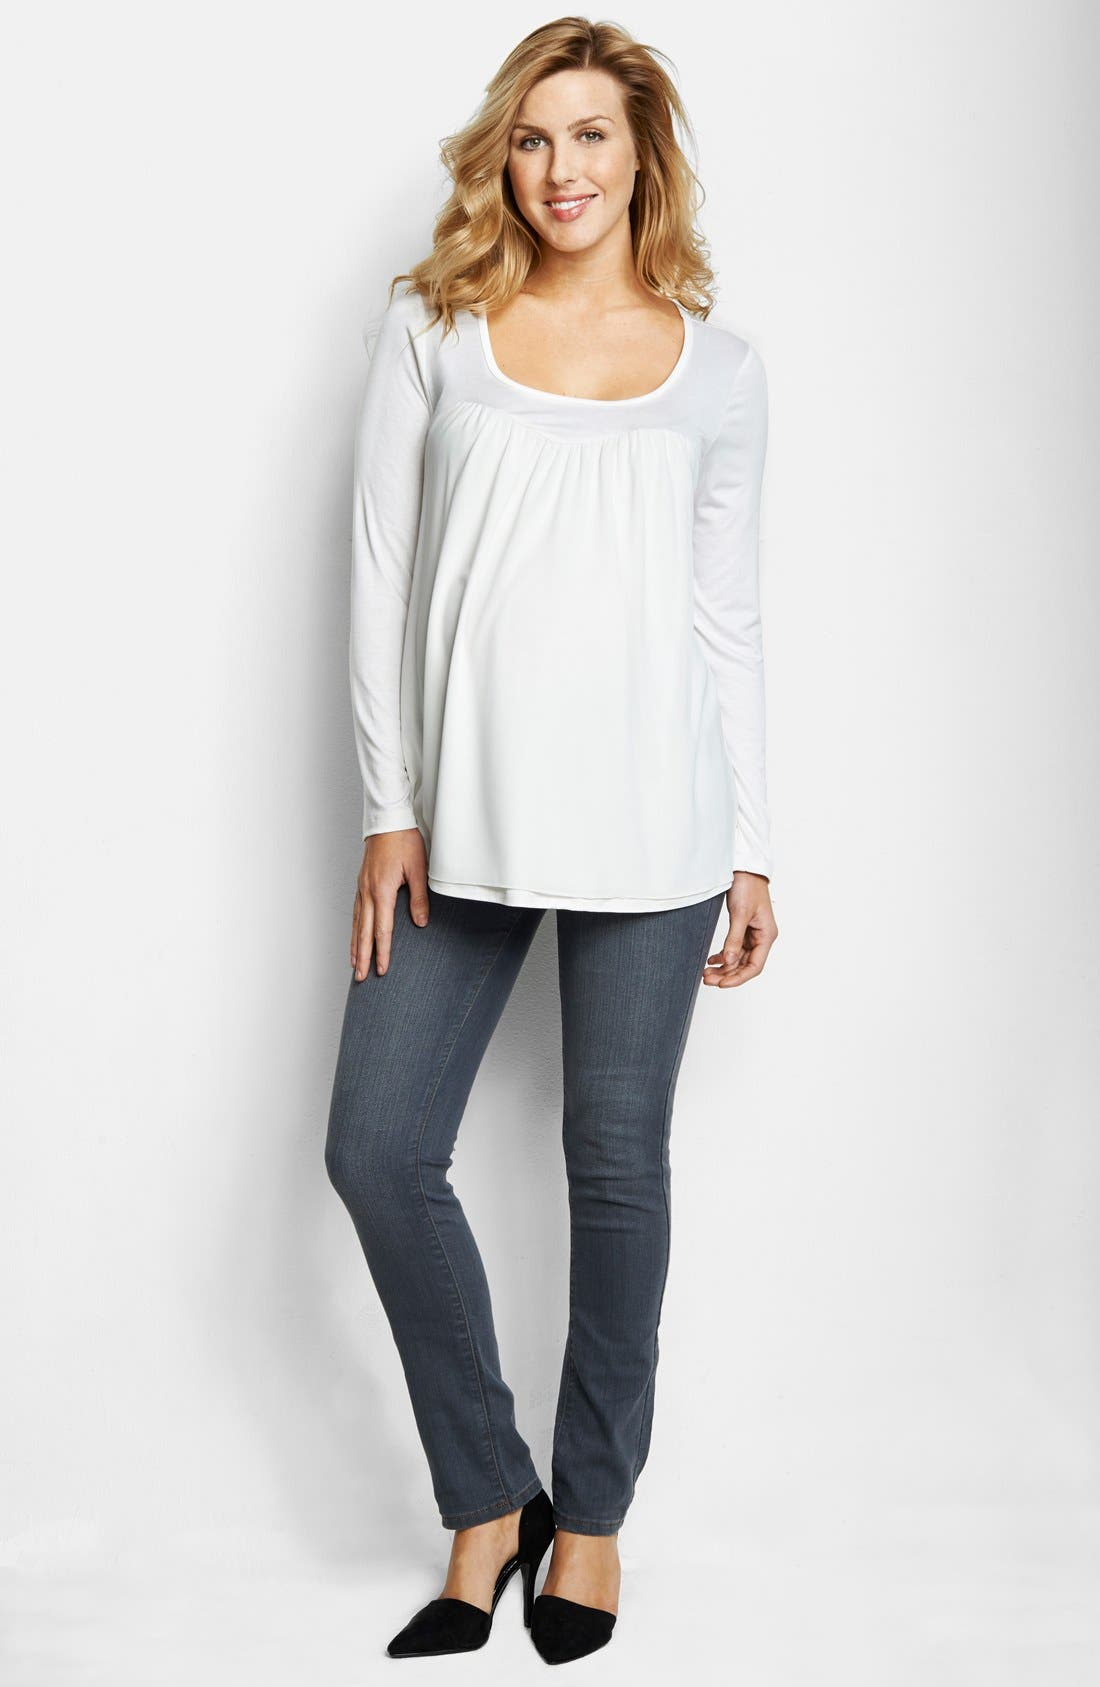 Main Image - Maternal America Chiffon Knit Maternity Top